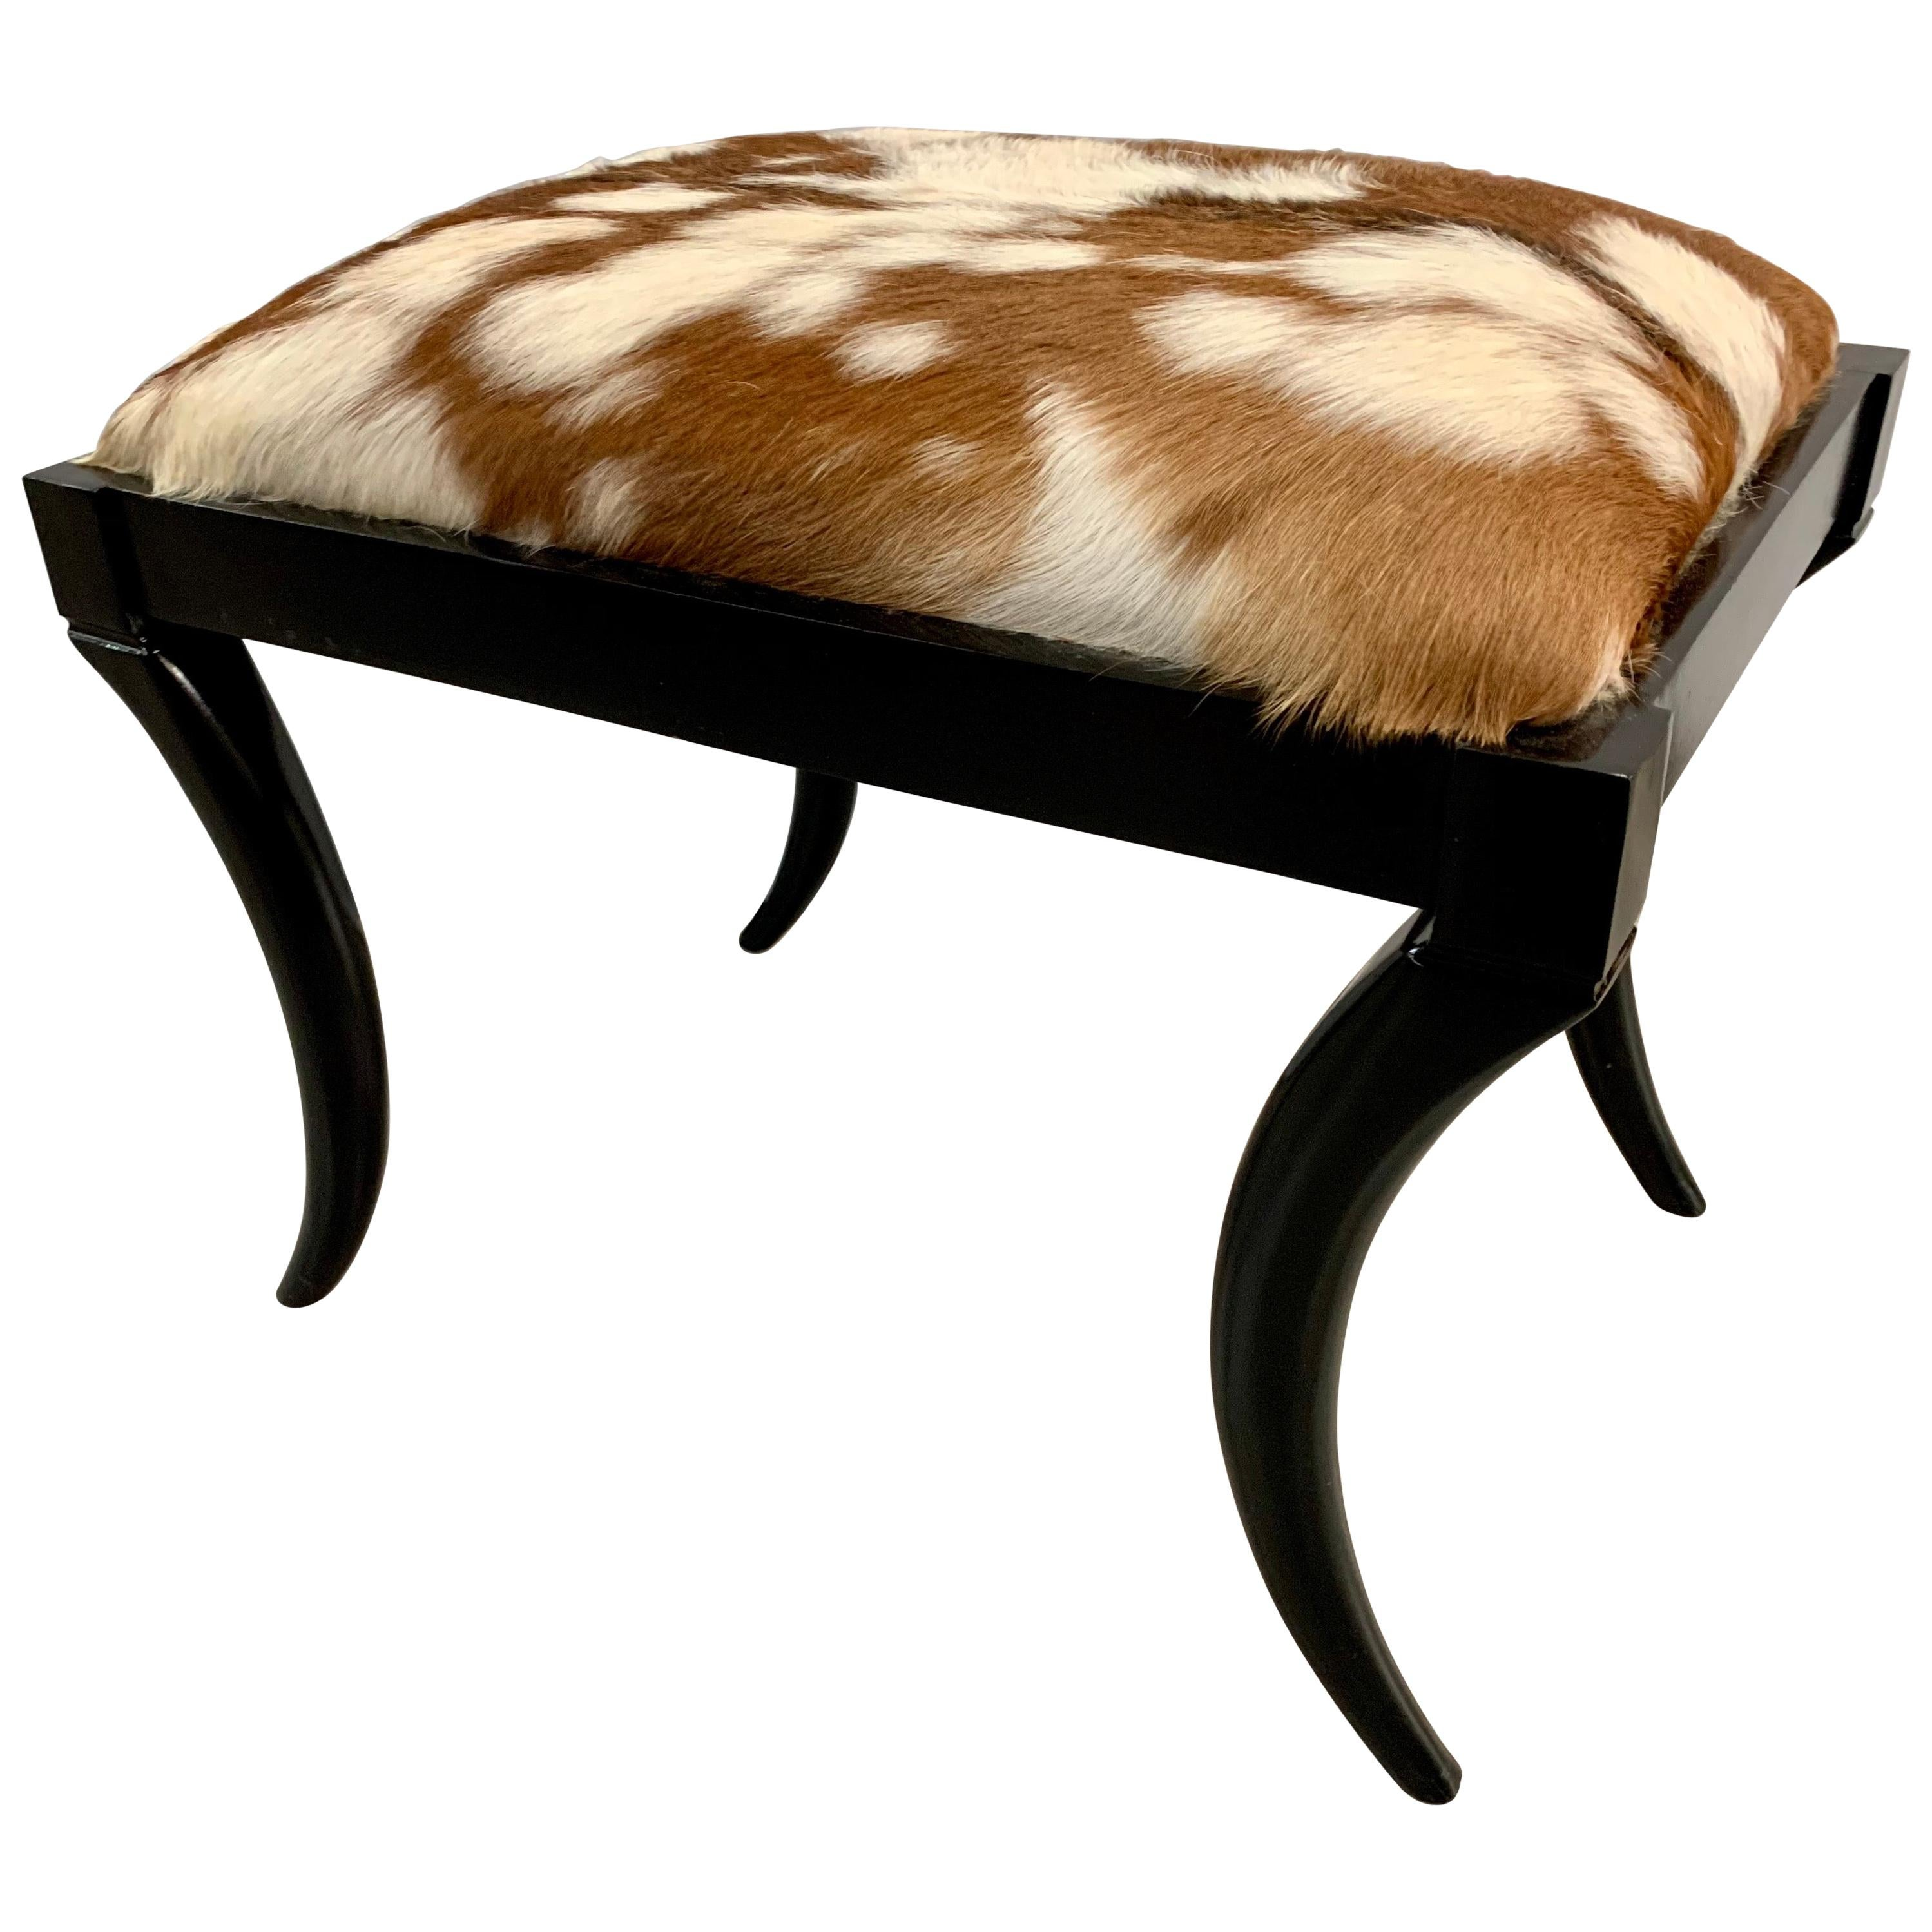 Cowhide Covered Lacquered Bench Stool Seat